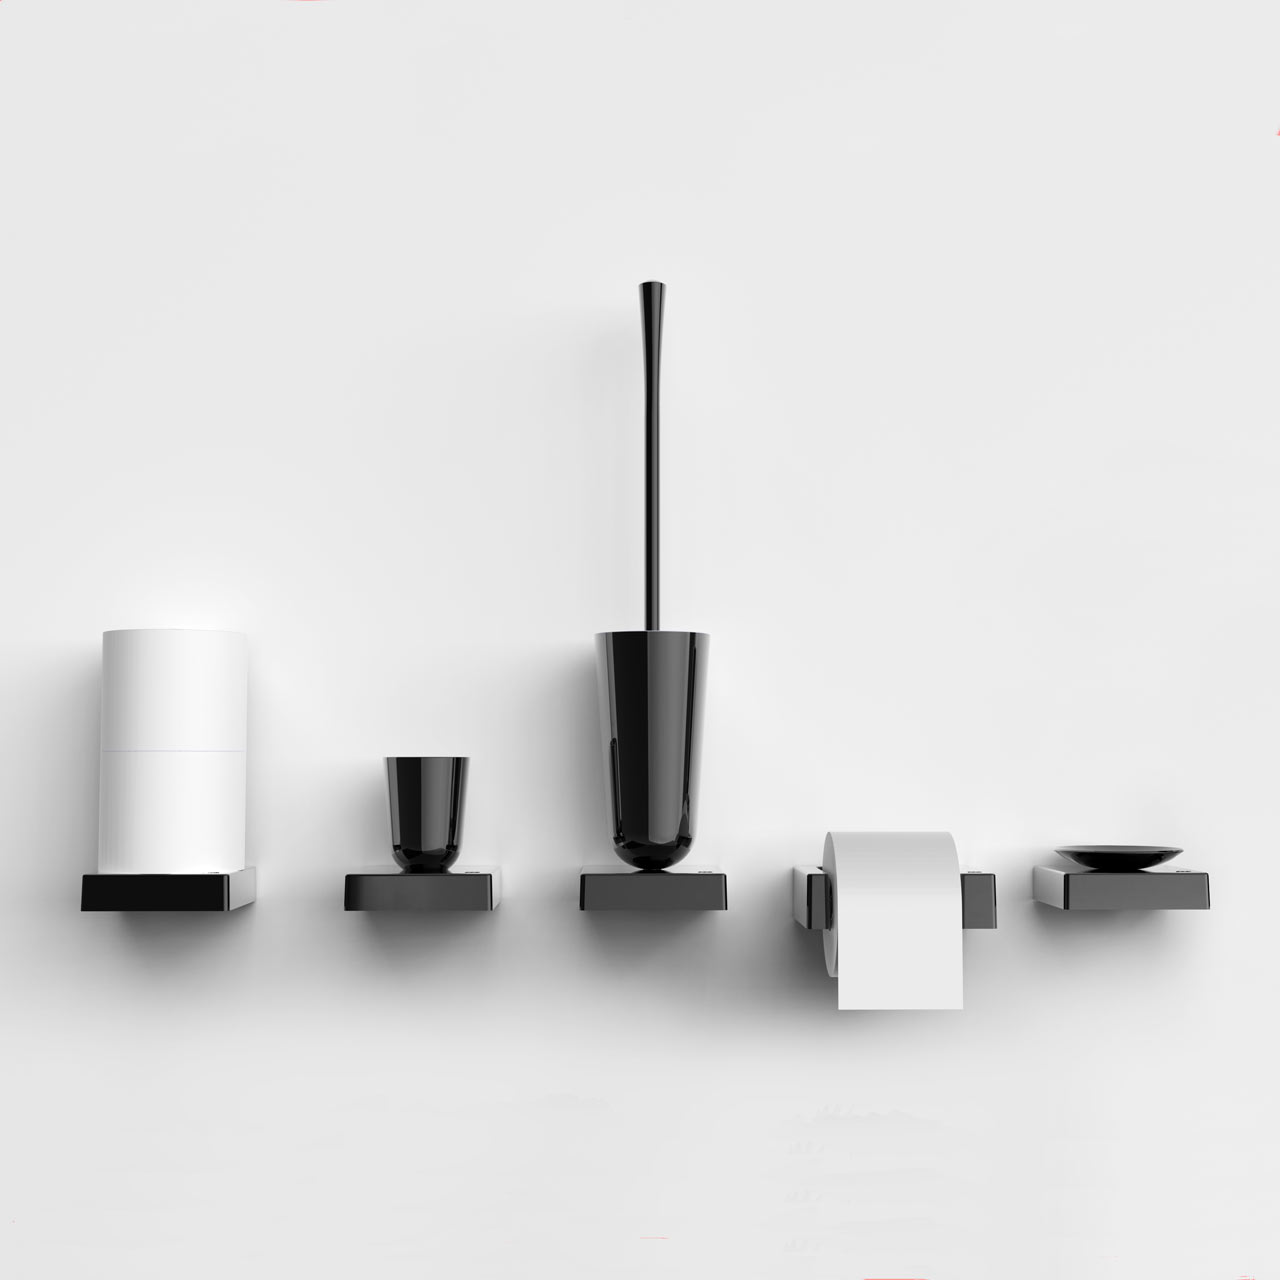 Platform: A Line of Bathroom Accessories by Brad Ascalon for pba